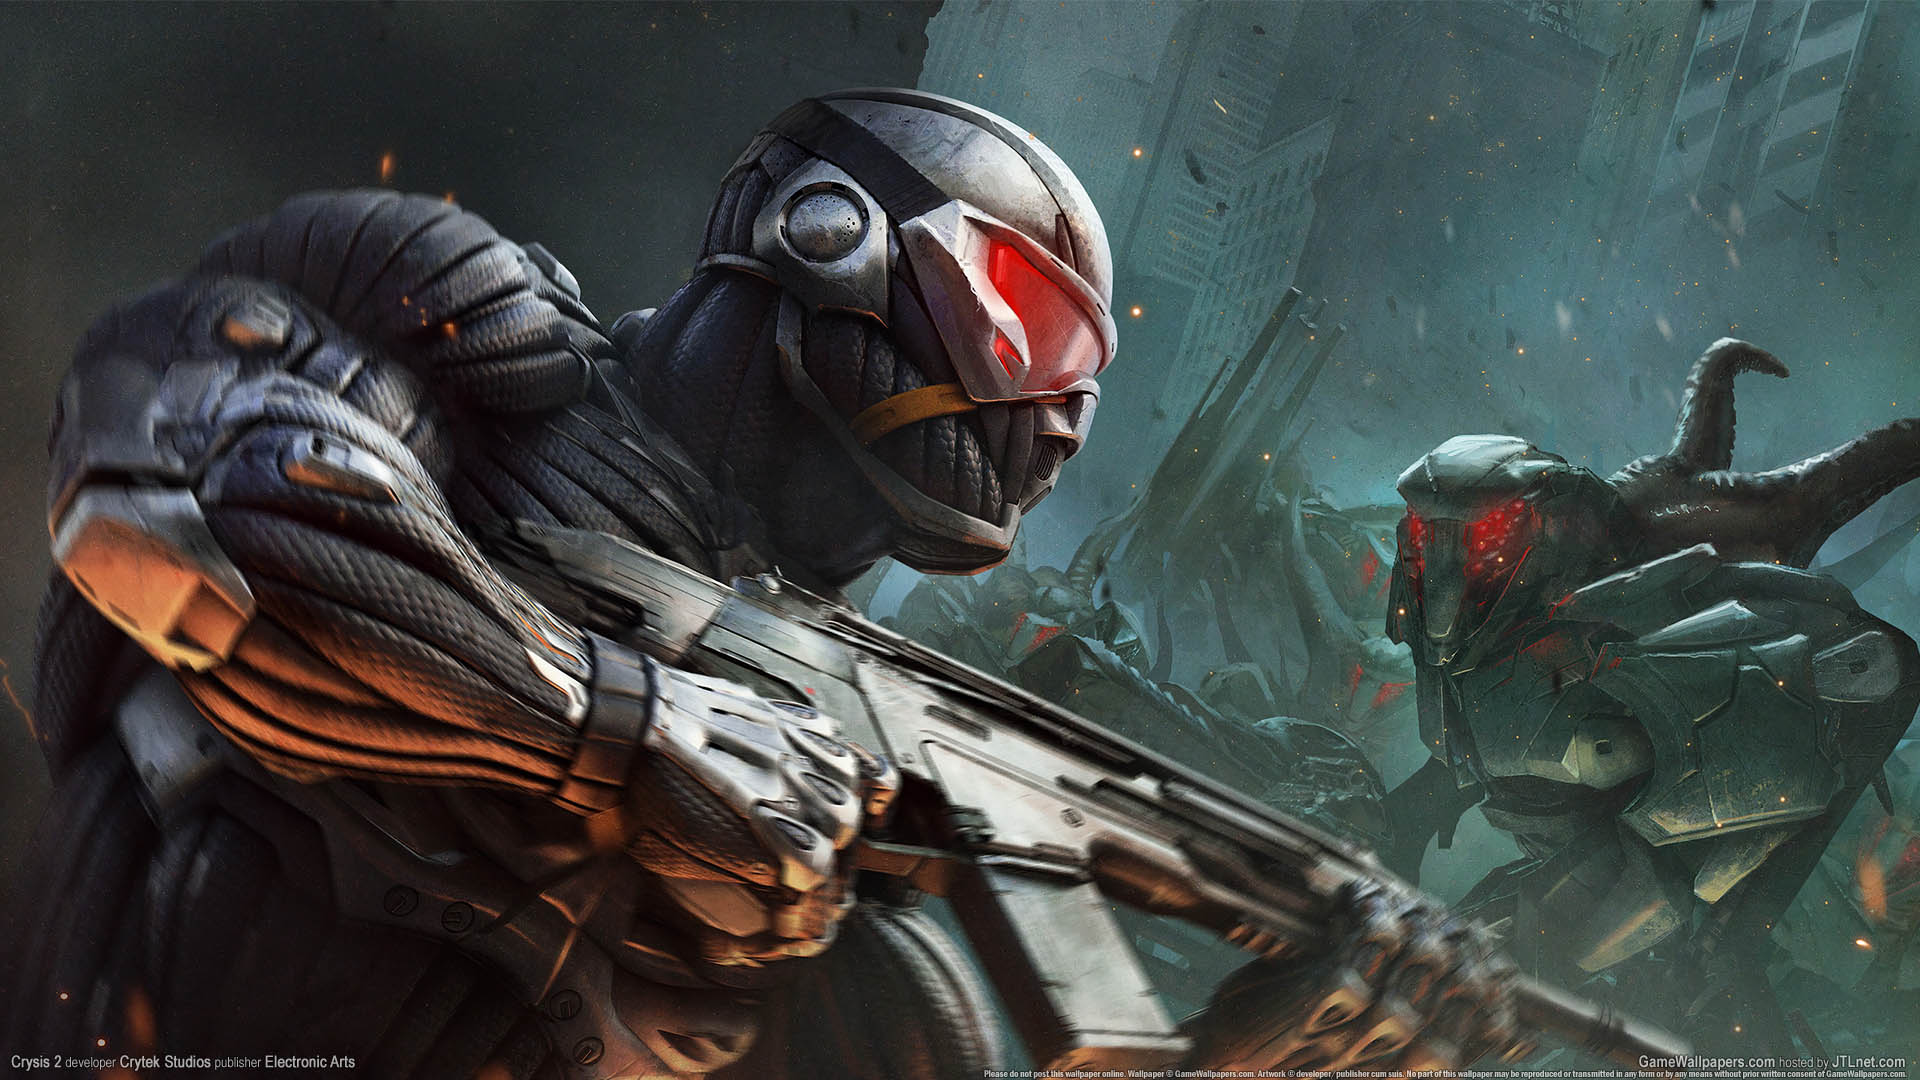 Crysis 2 wallpaper 12 1920x1080